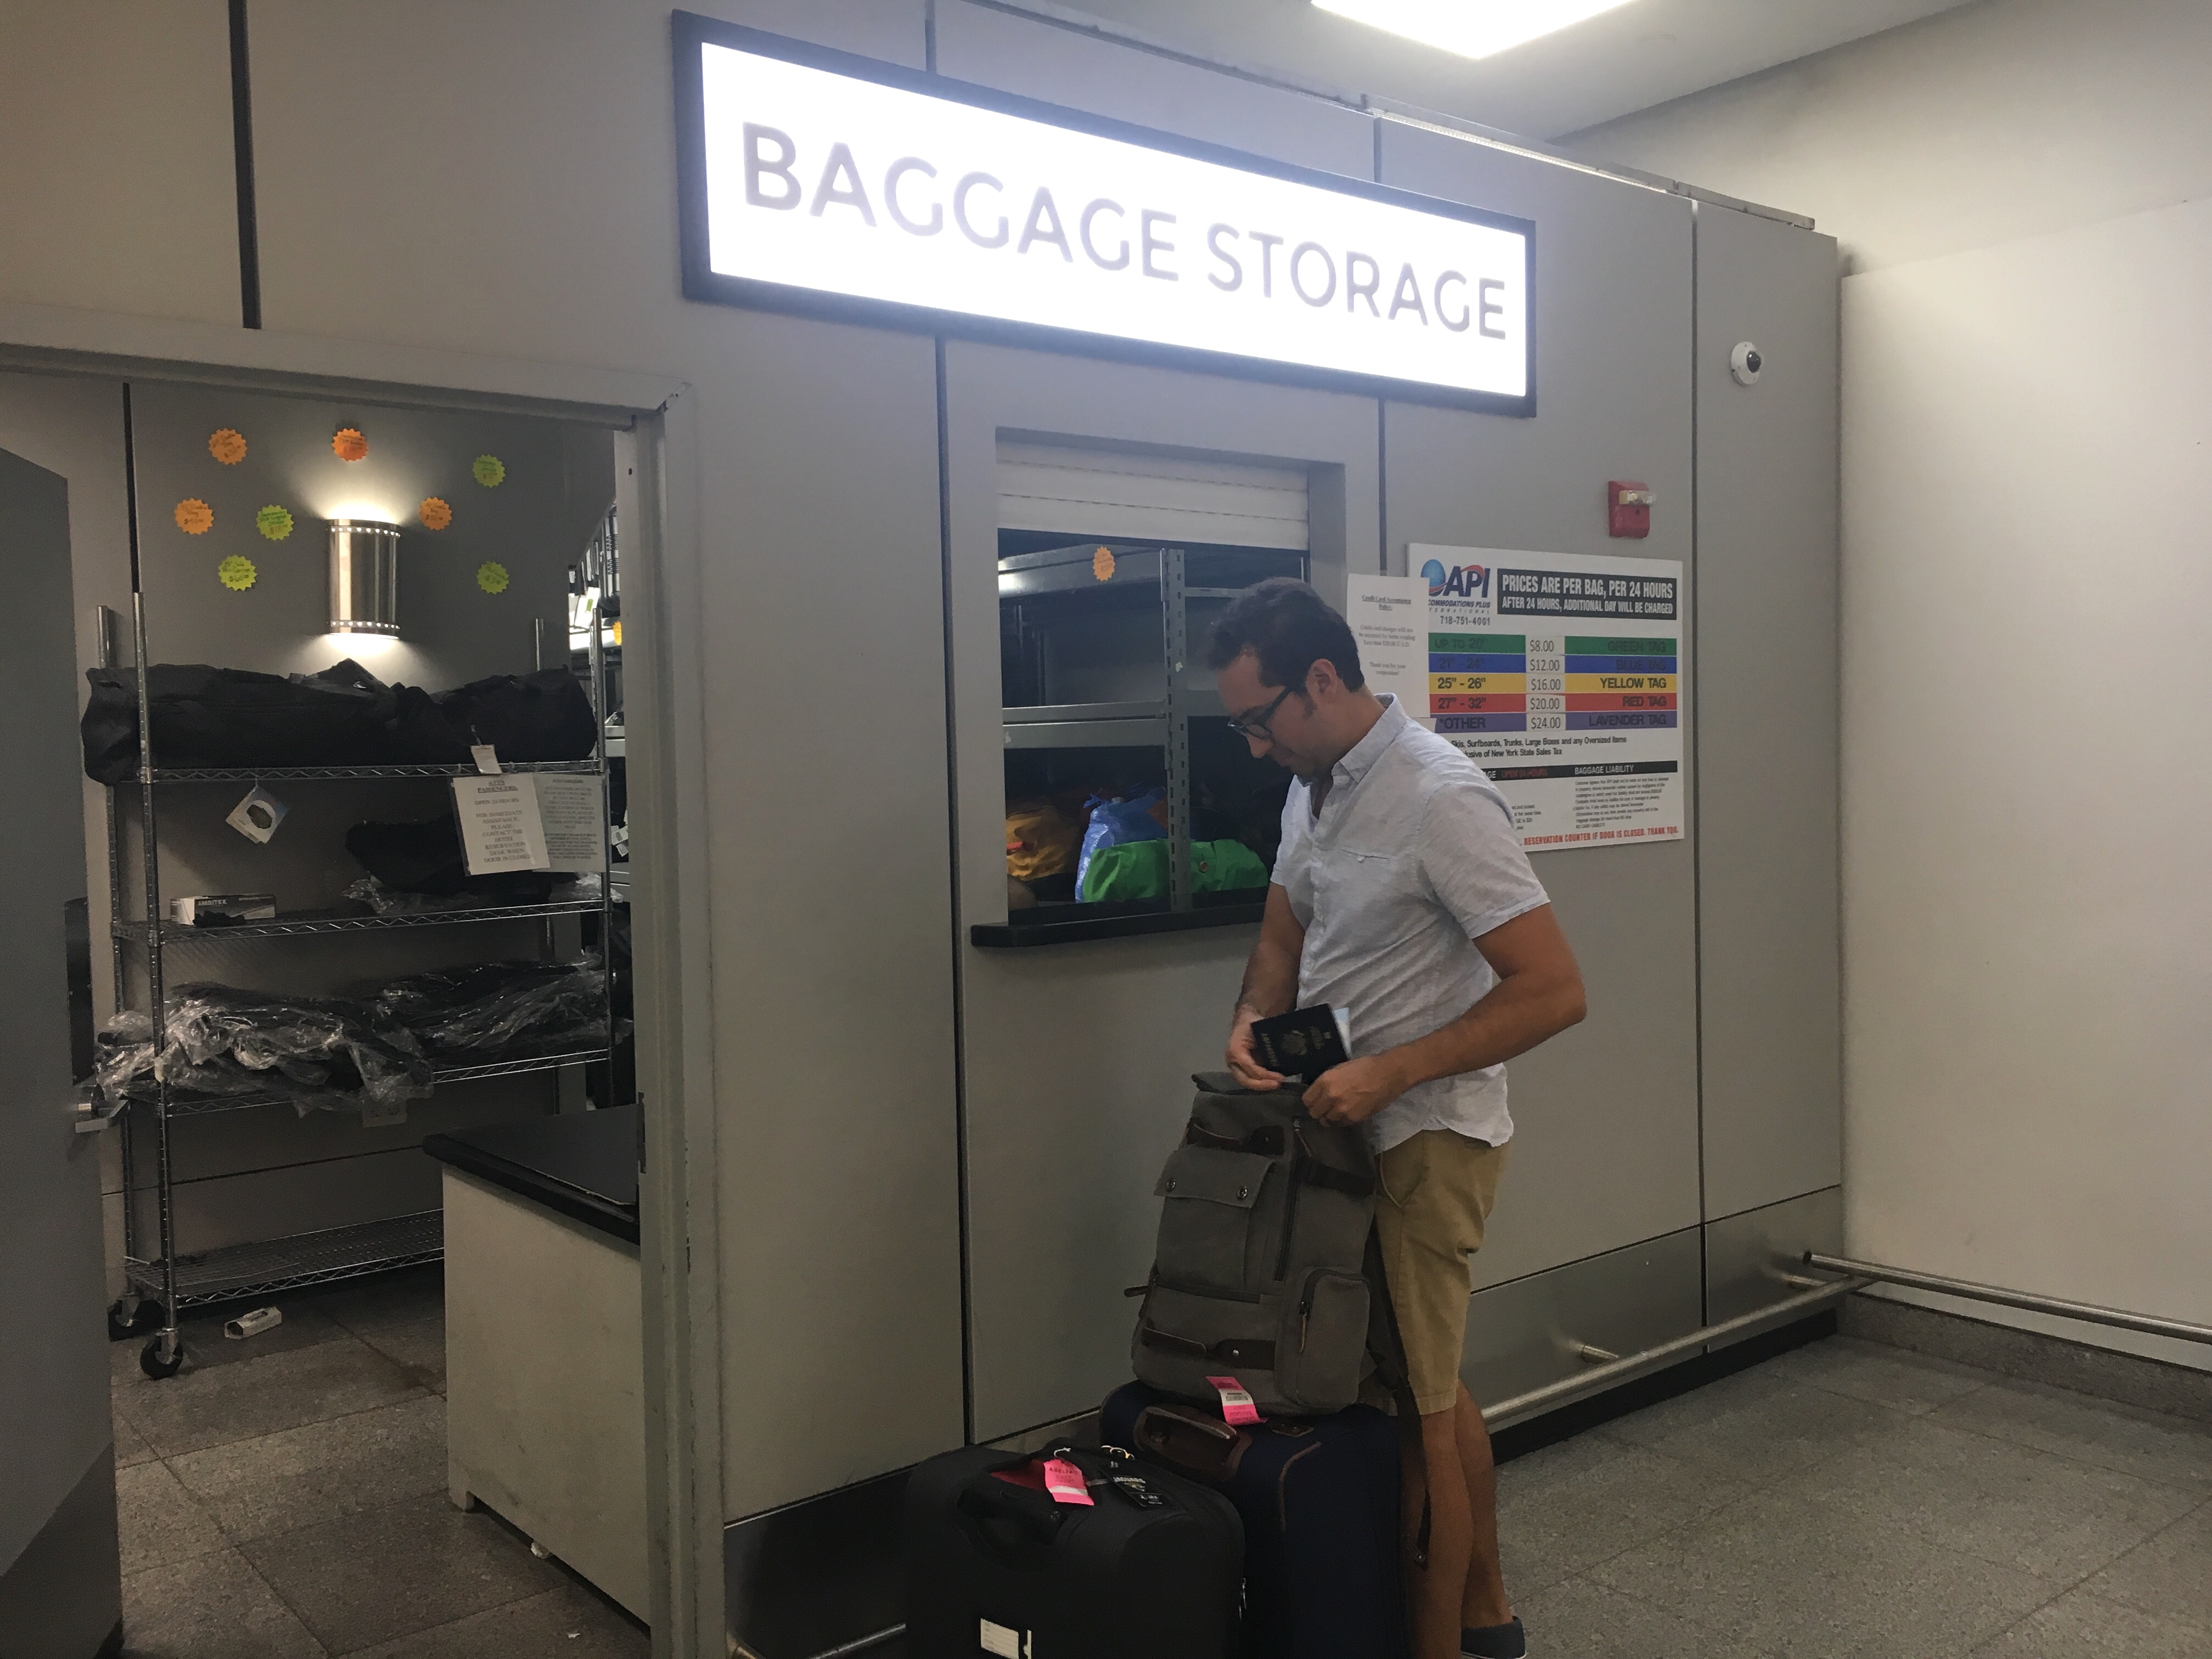 Layover in NYC? Use the baggage storage facility at JFK airport